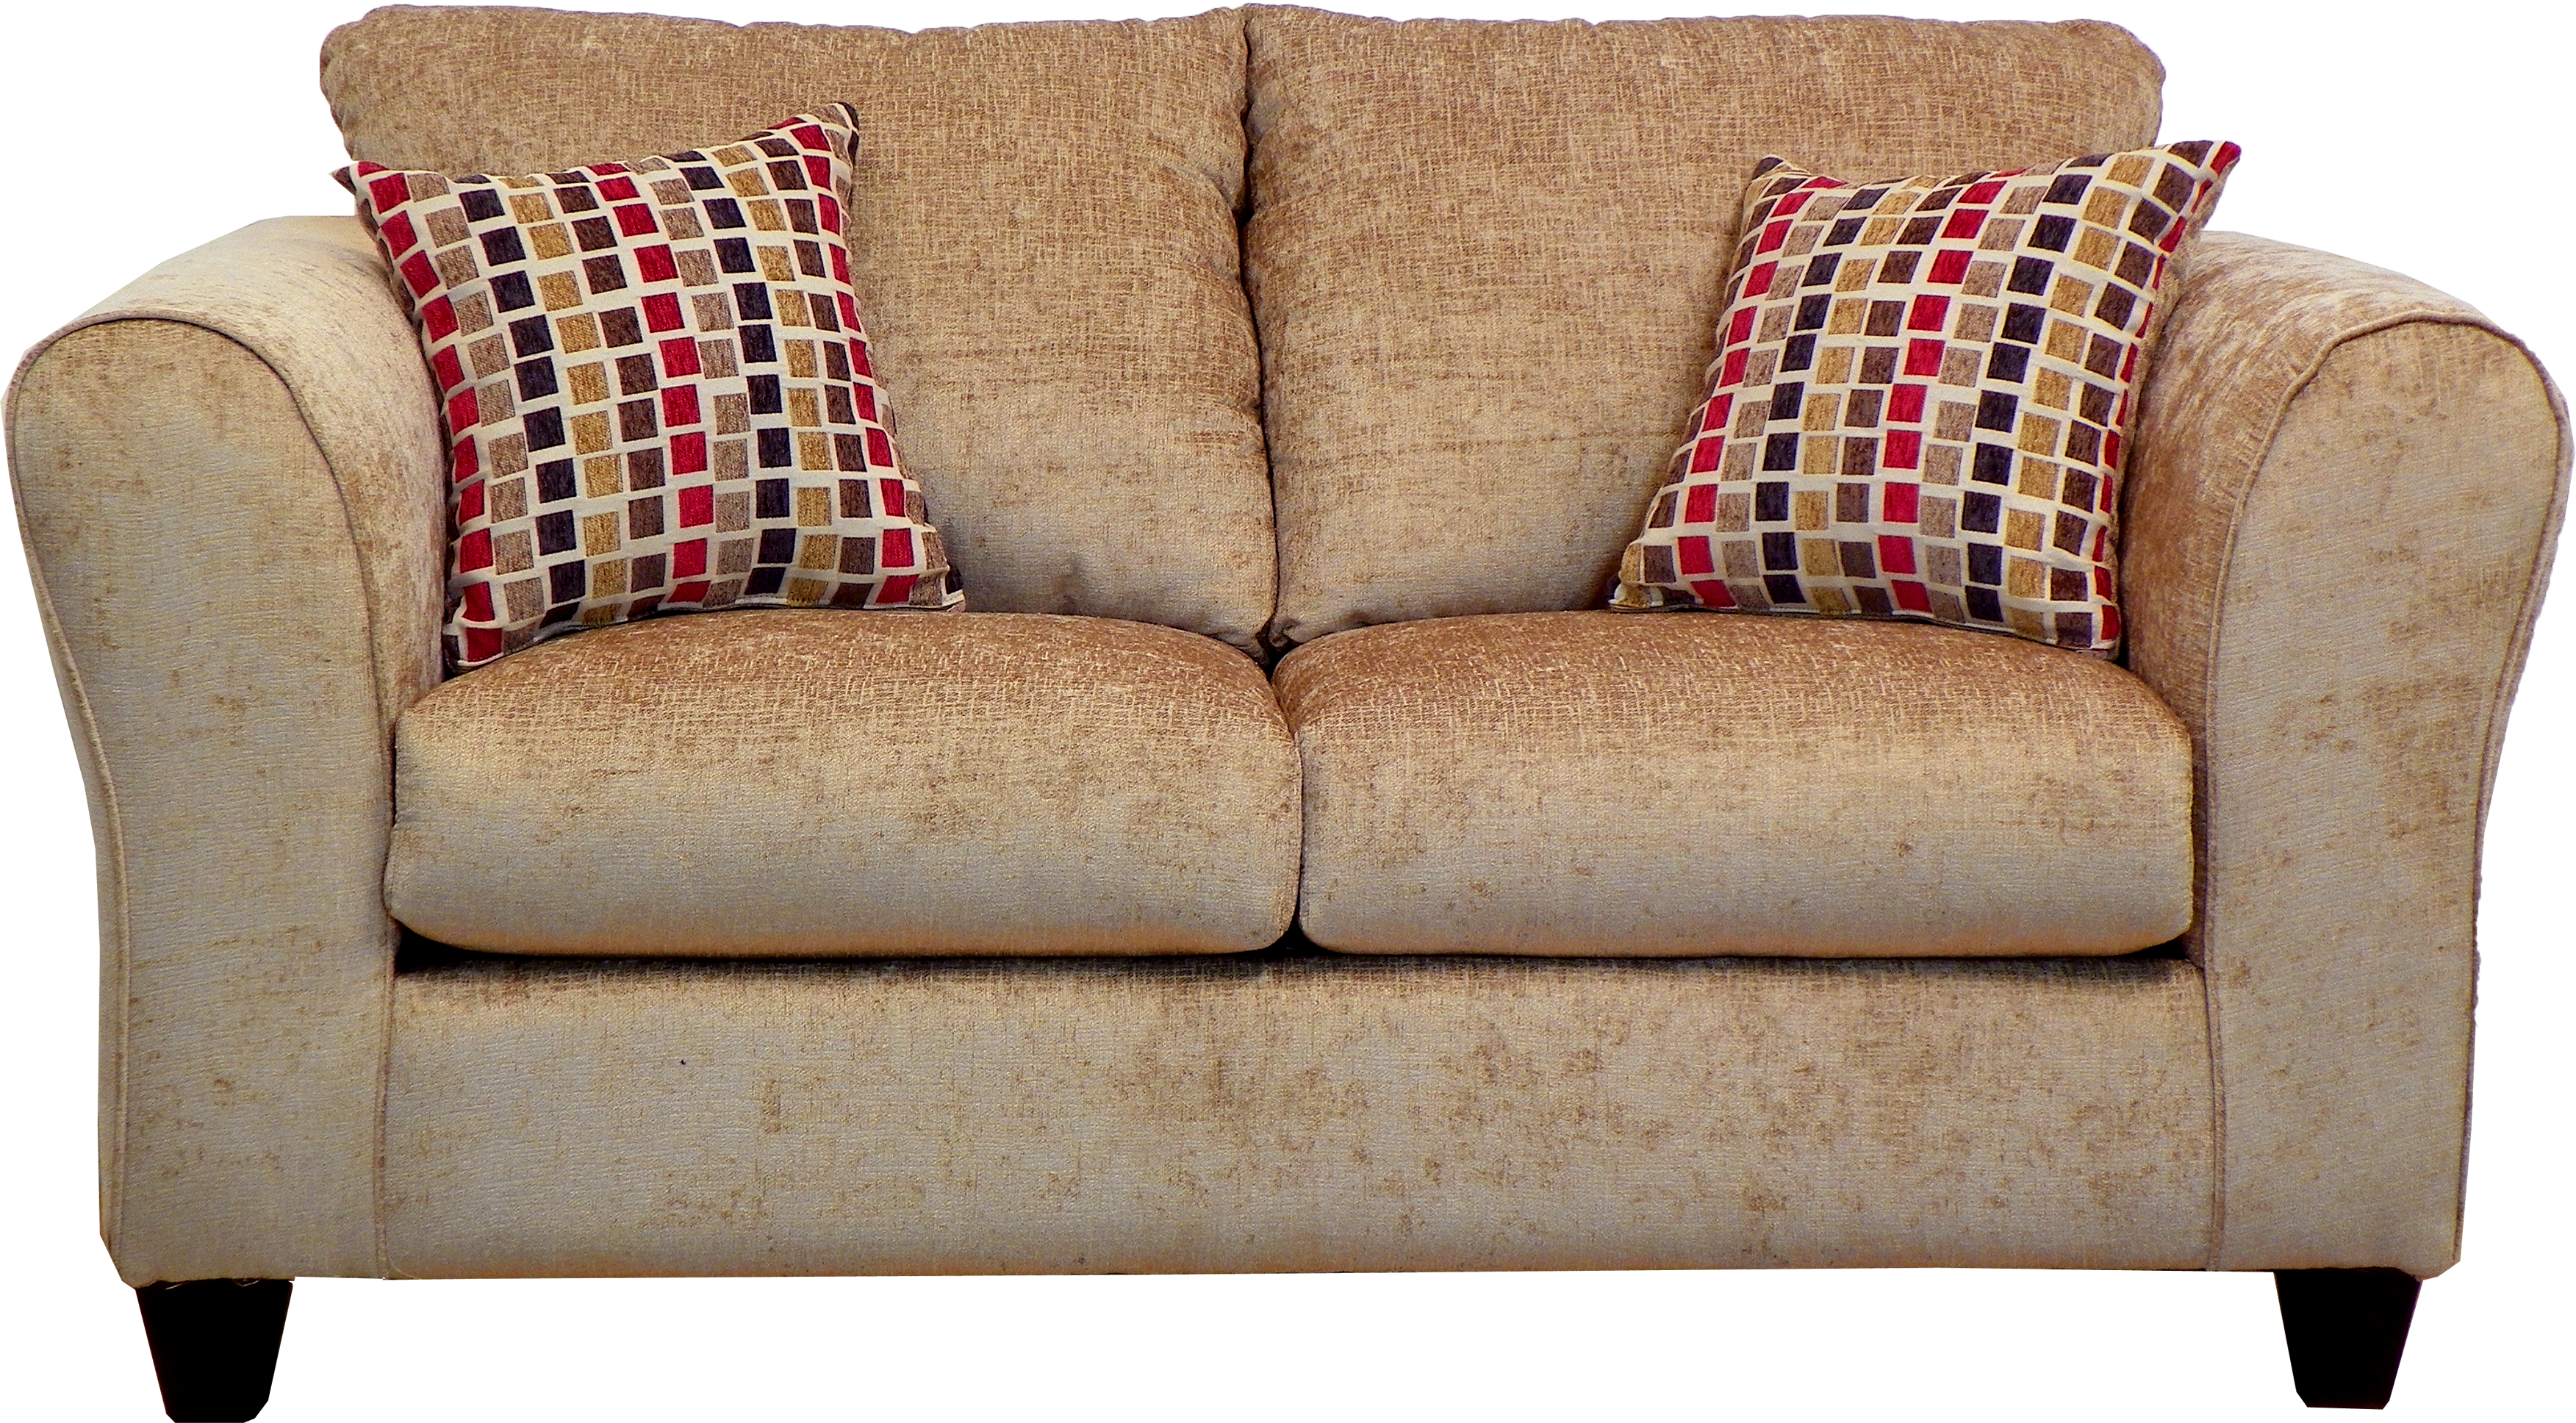 Sofa PNG images free download.